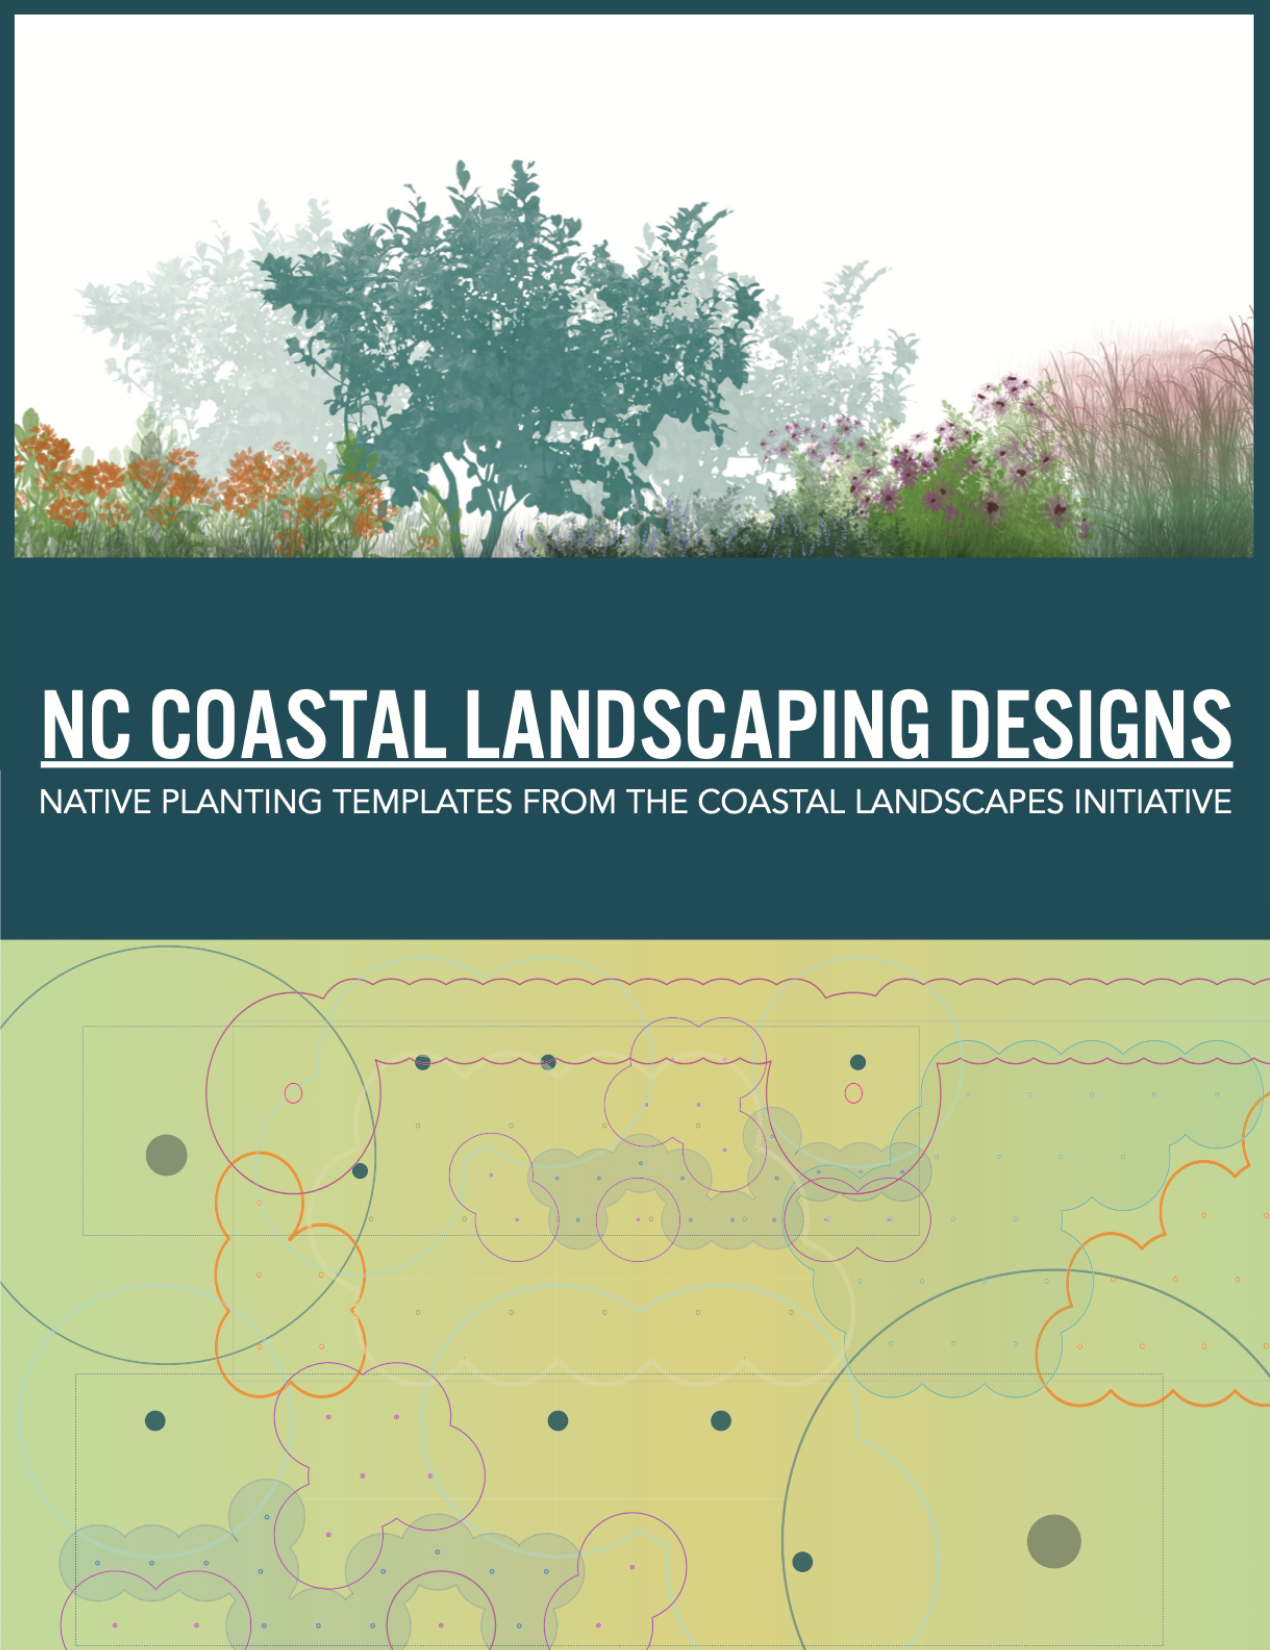 Cover of the NC Coastal Landscaping Designs resource